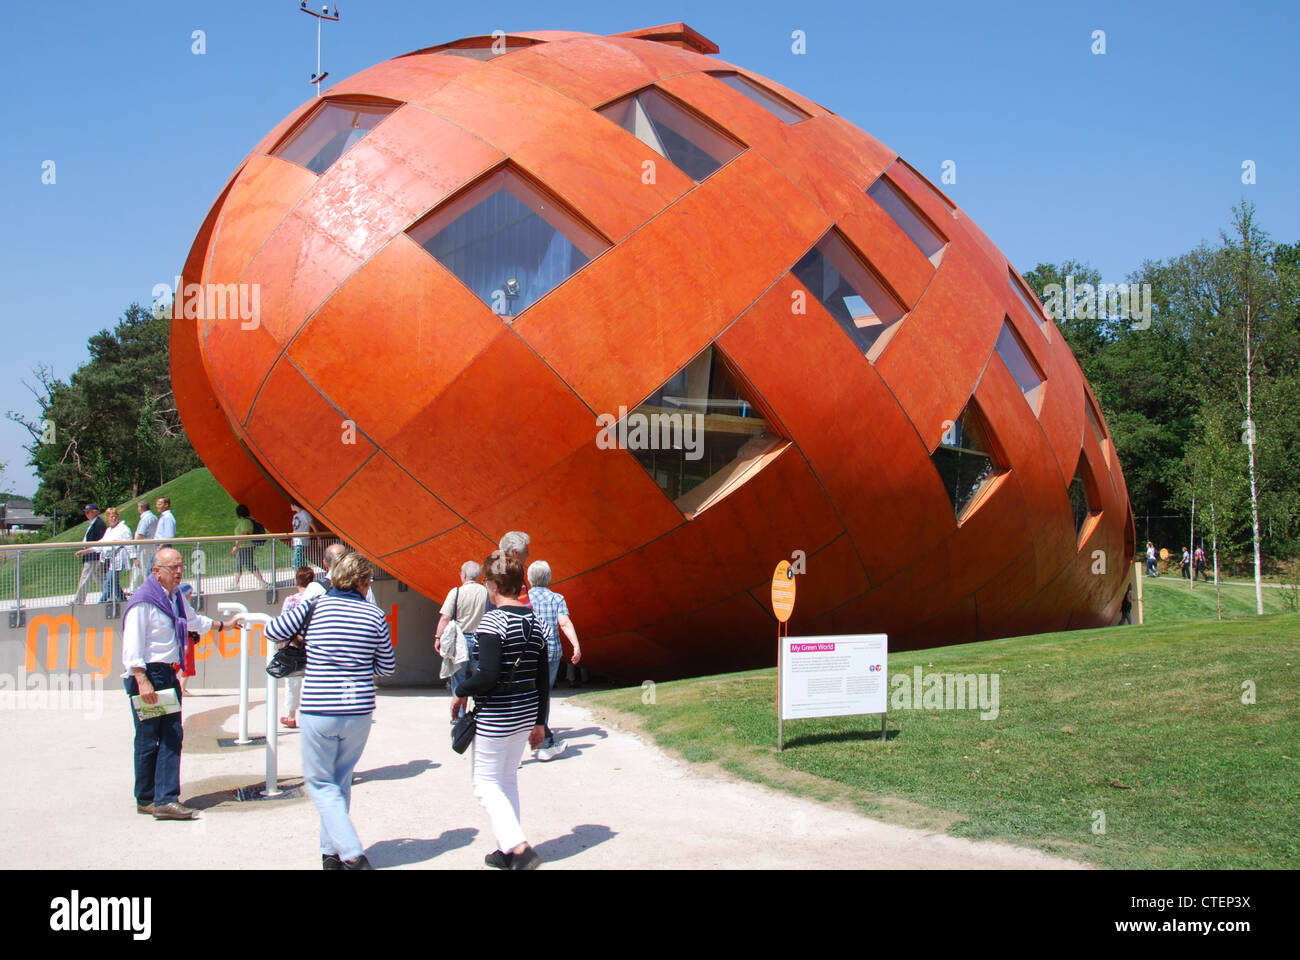 My Green World  at Floriade 2012, world horticultural expo Venlo Netherlands Stock Photo